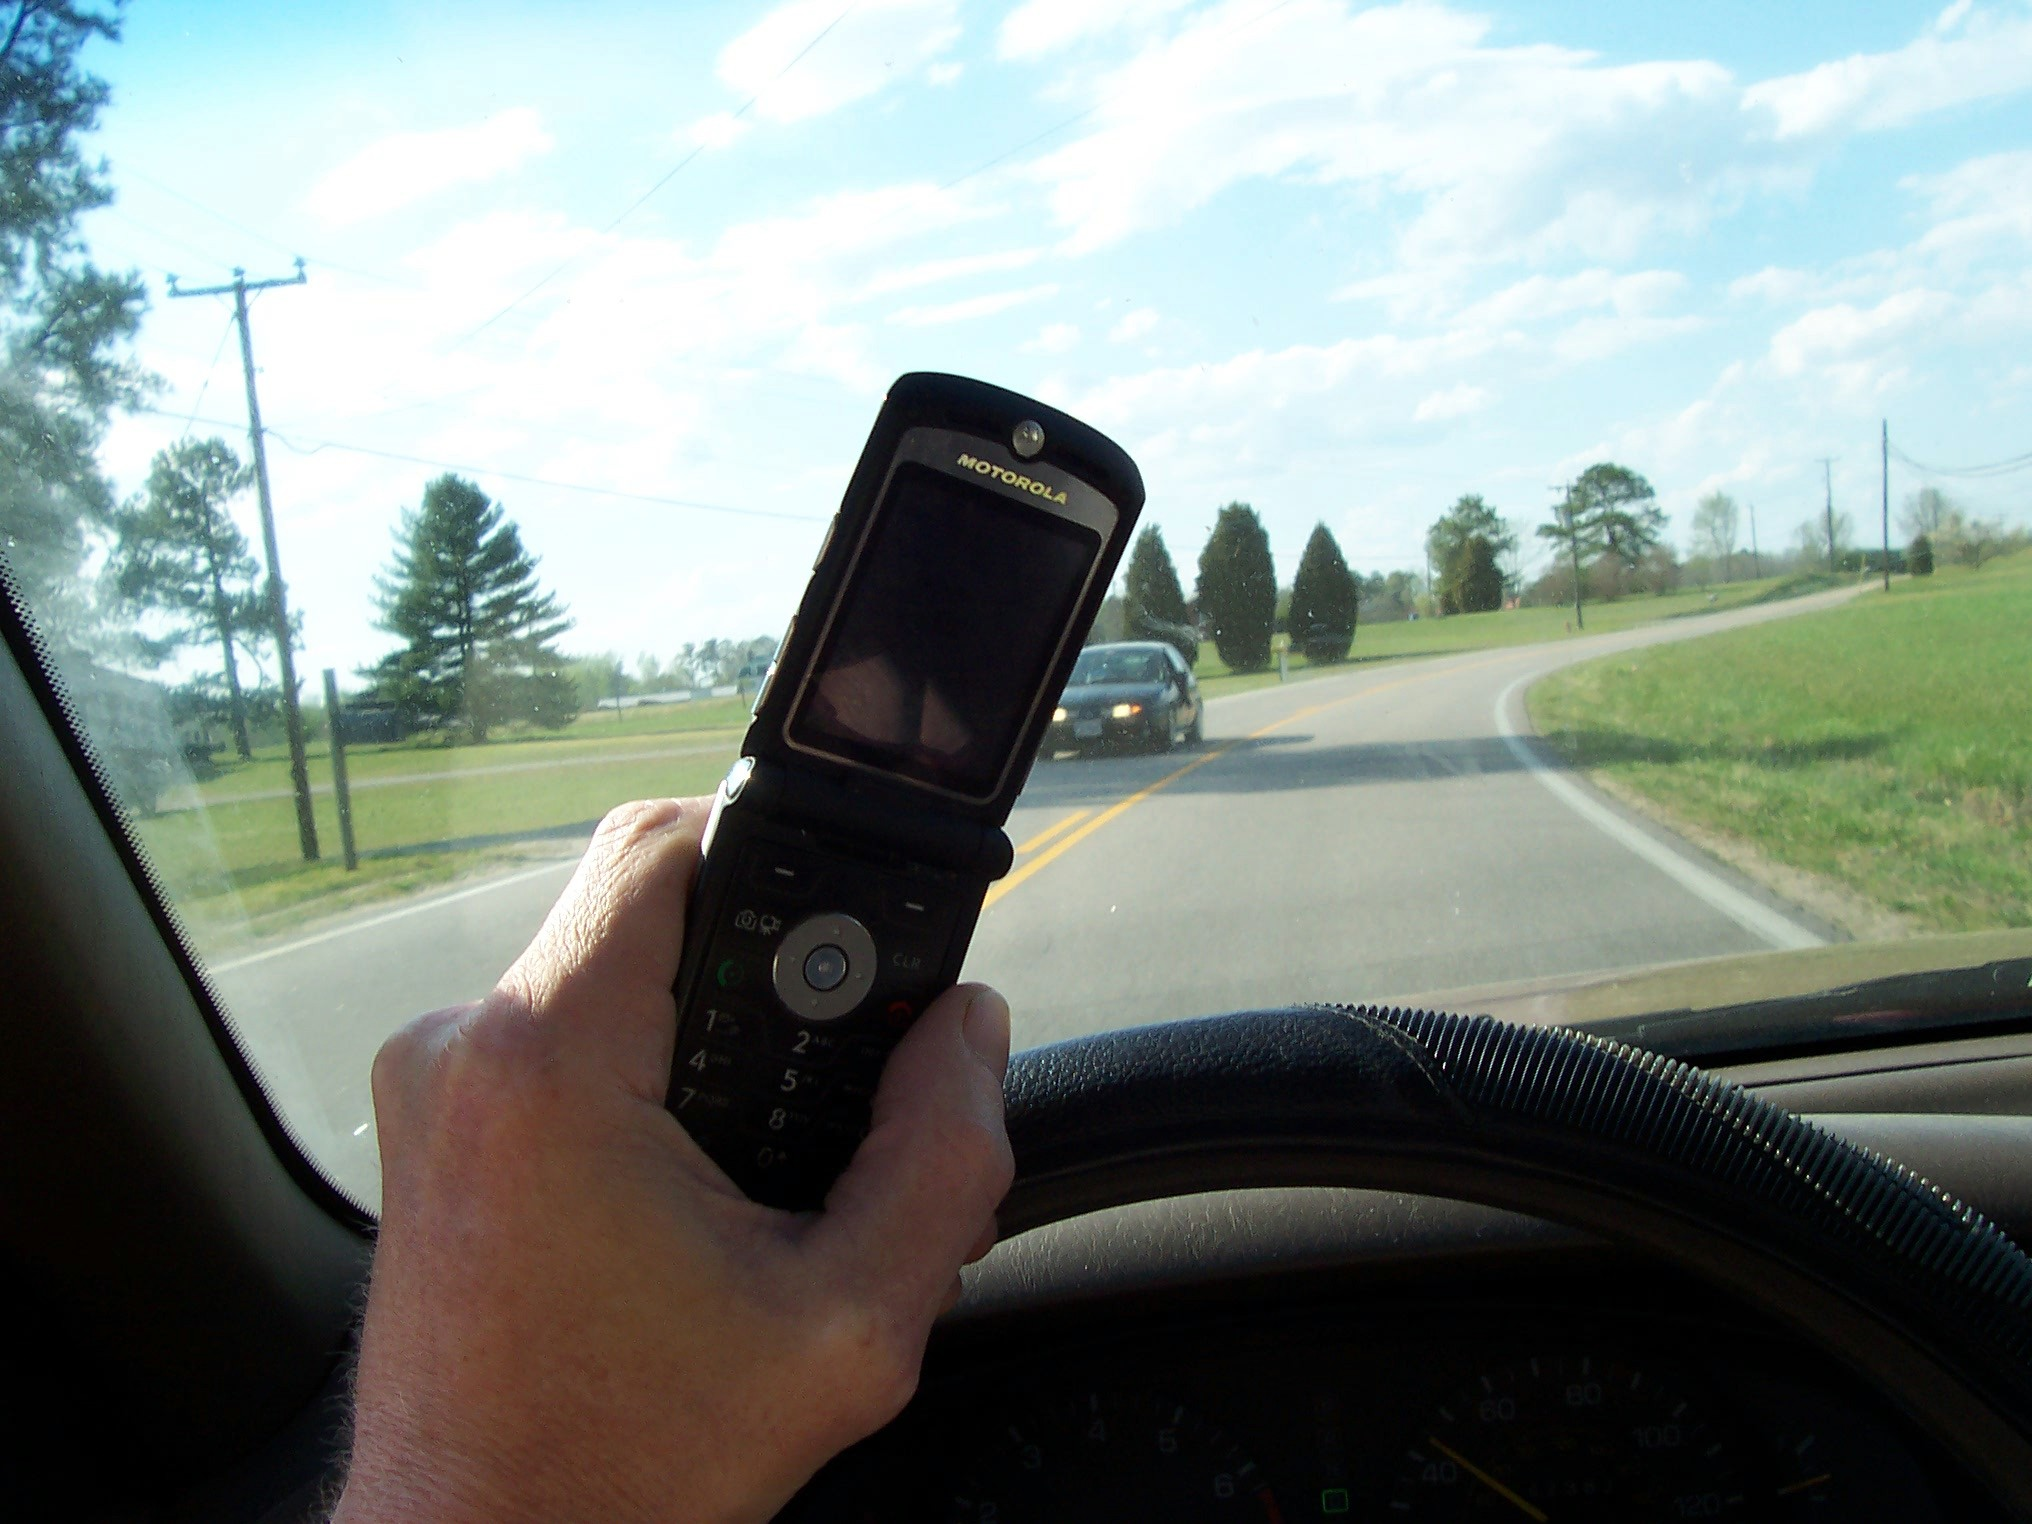 Texting while driving - Wikipedia